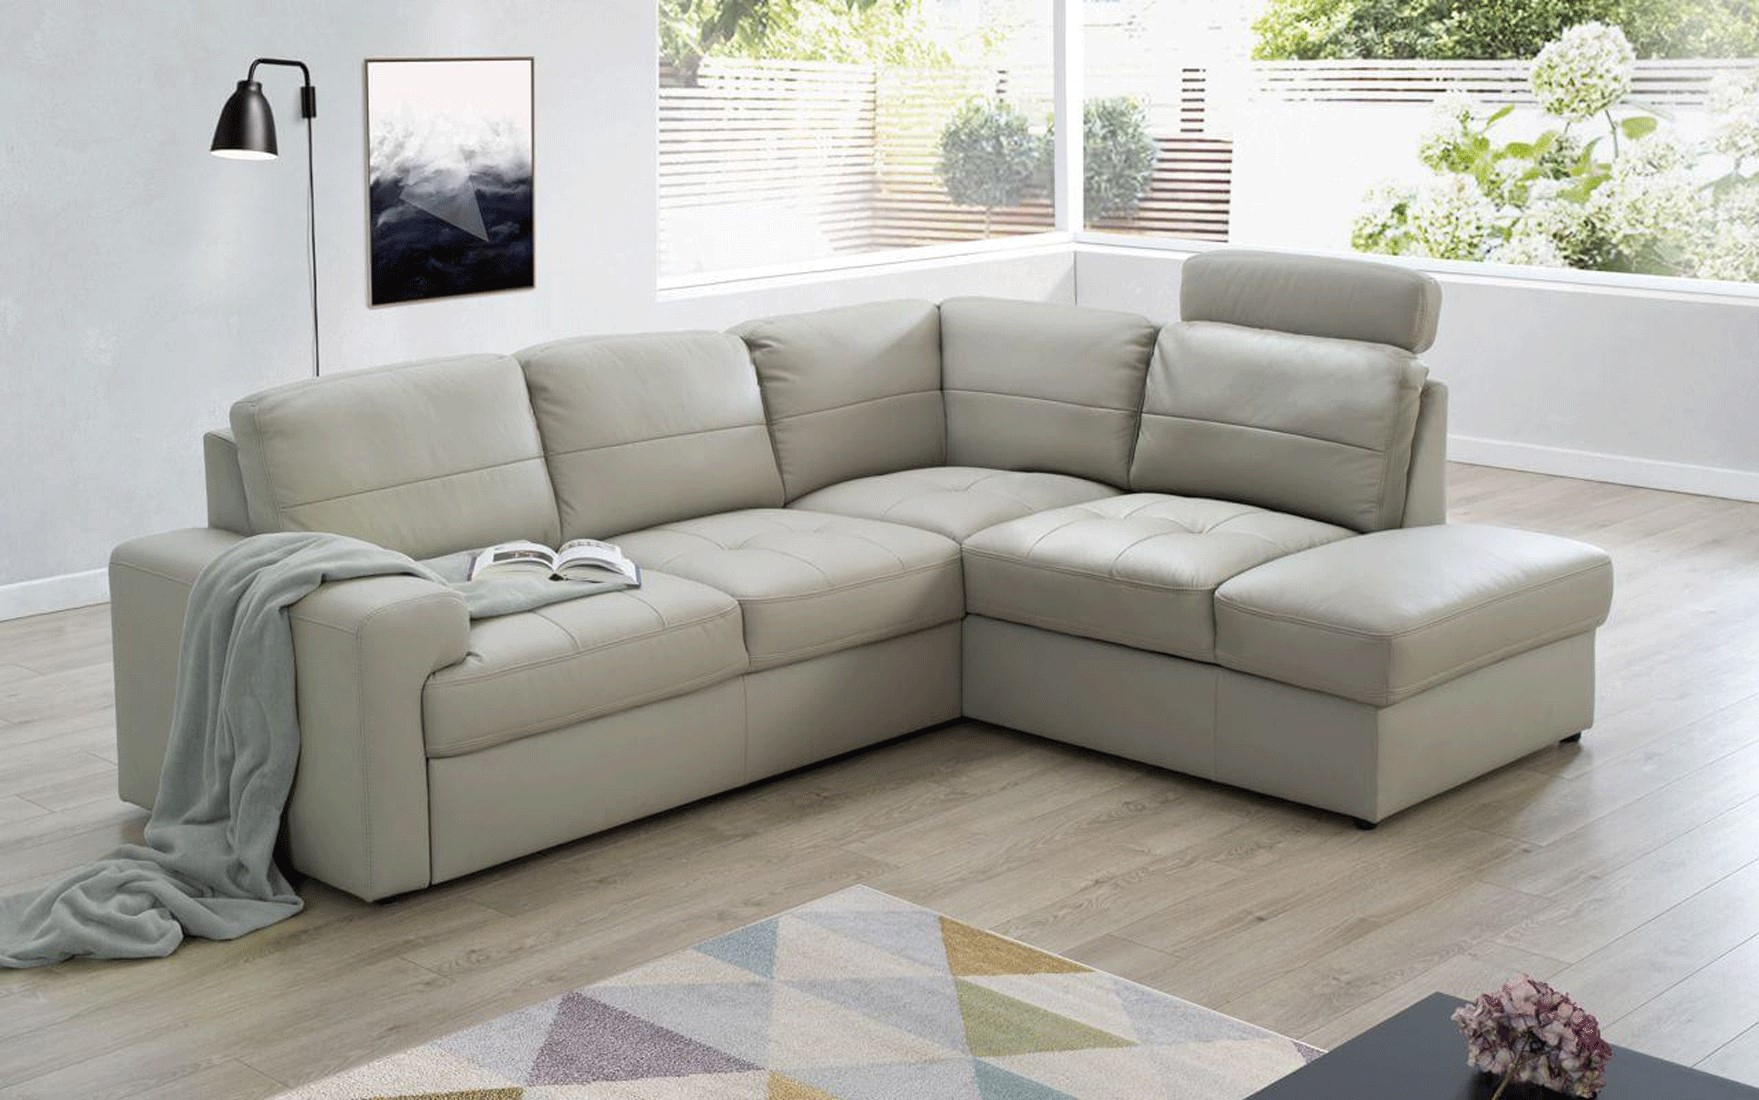 Ella Sectional Right W/bed & Storage, Sectionals With Within Hannah Right Sectional Sofas (View 14 of 15)